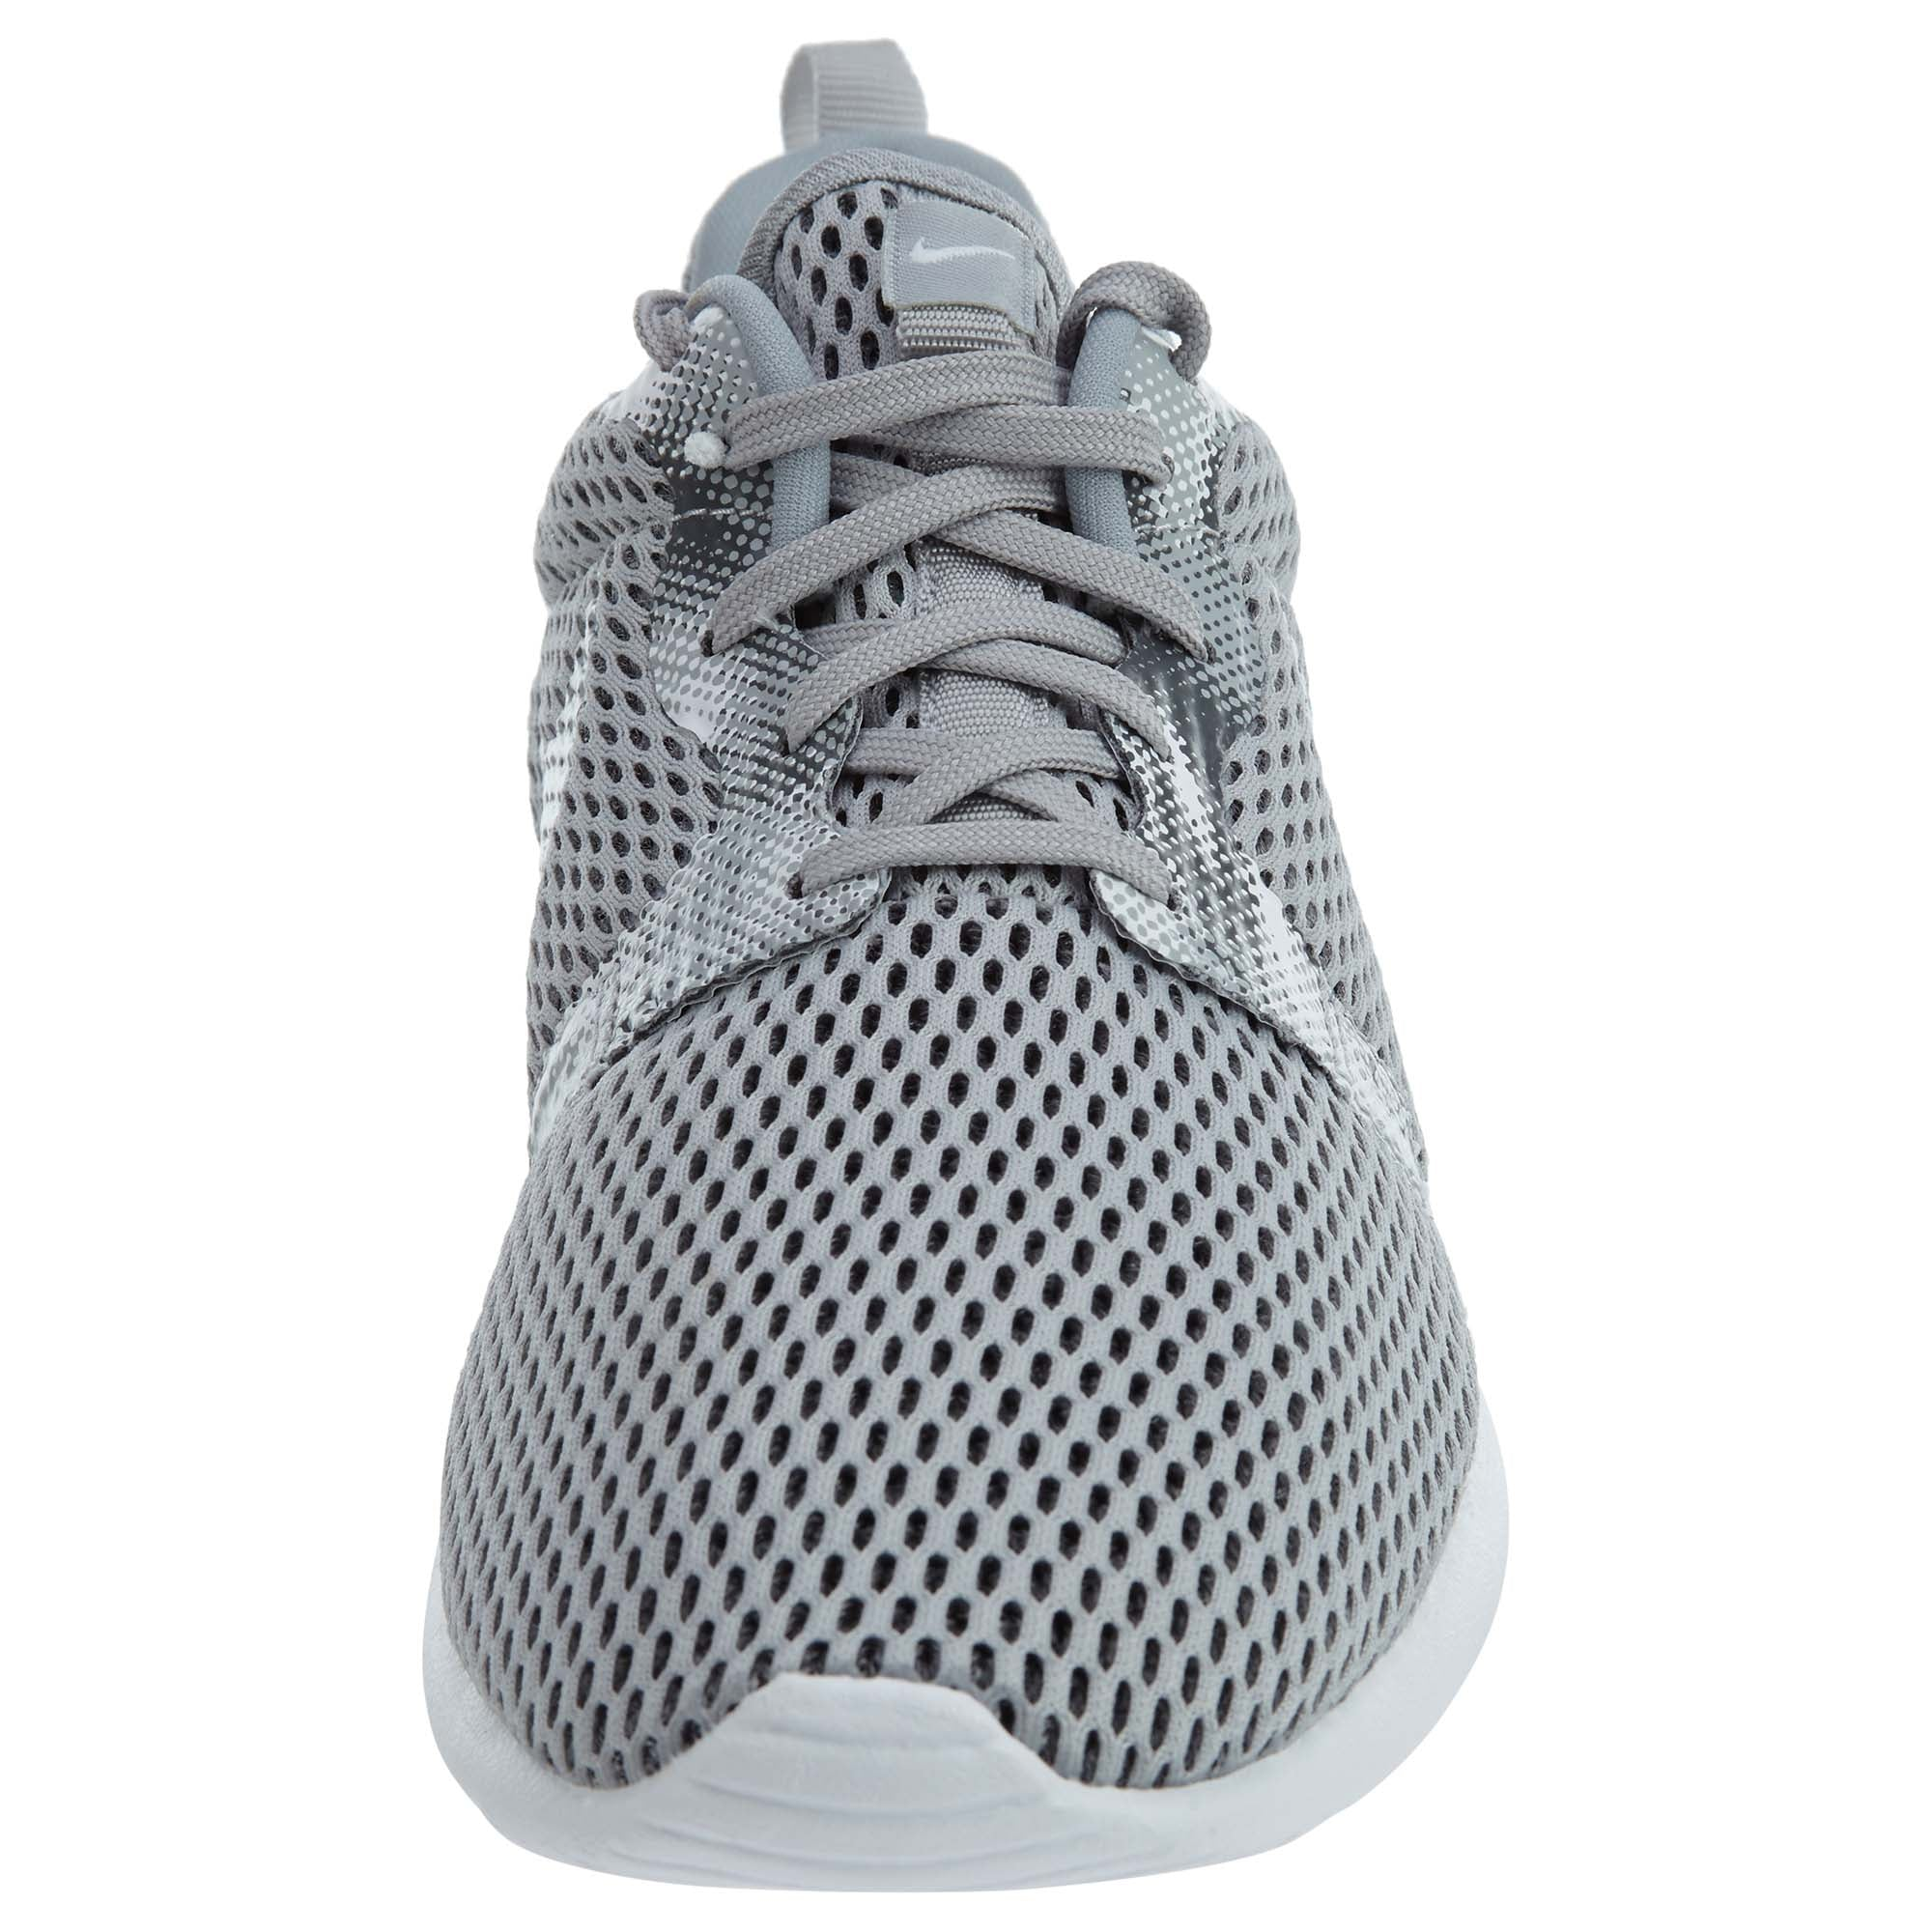 Nike Roshe One Hyp Br Gpx Mens Style : 859526